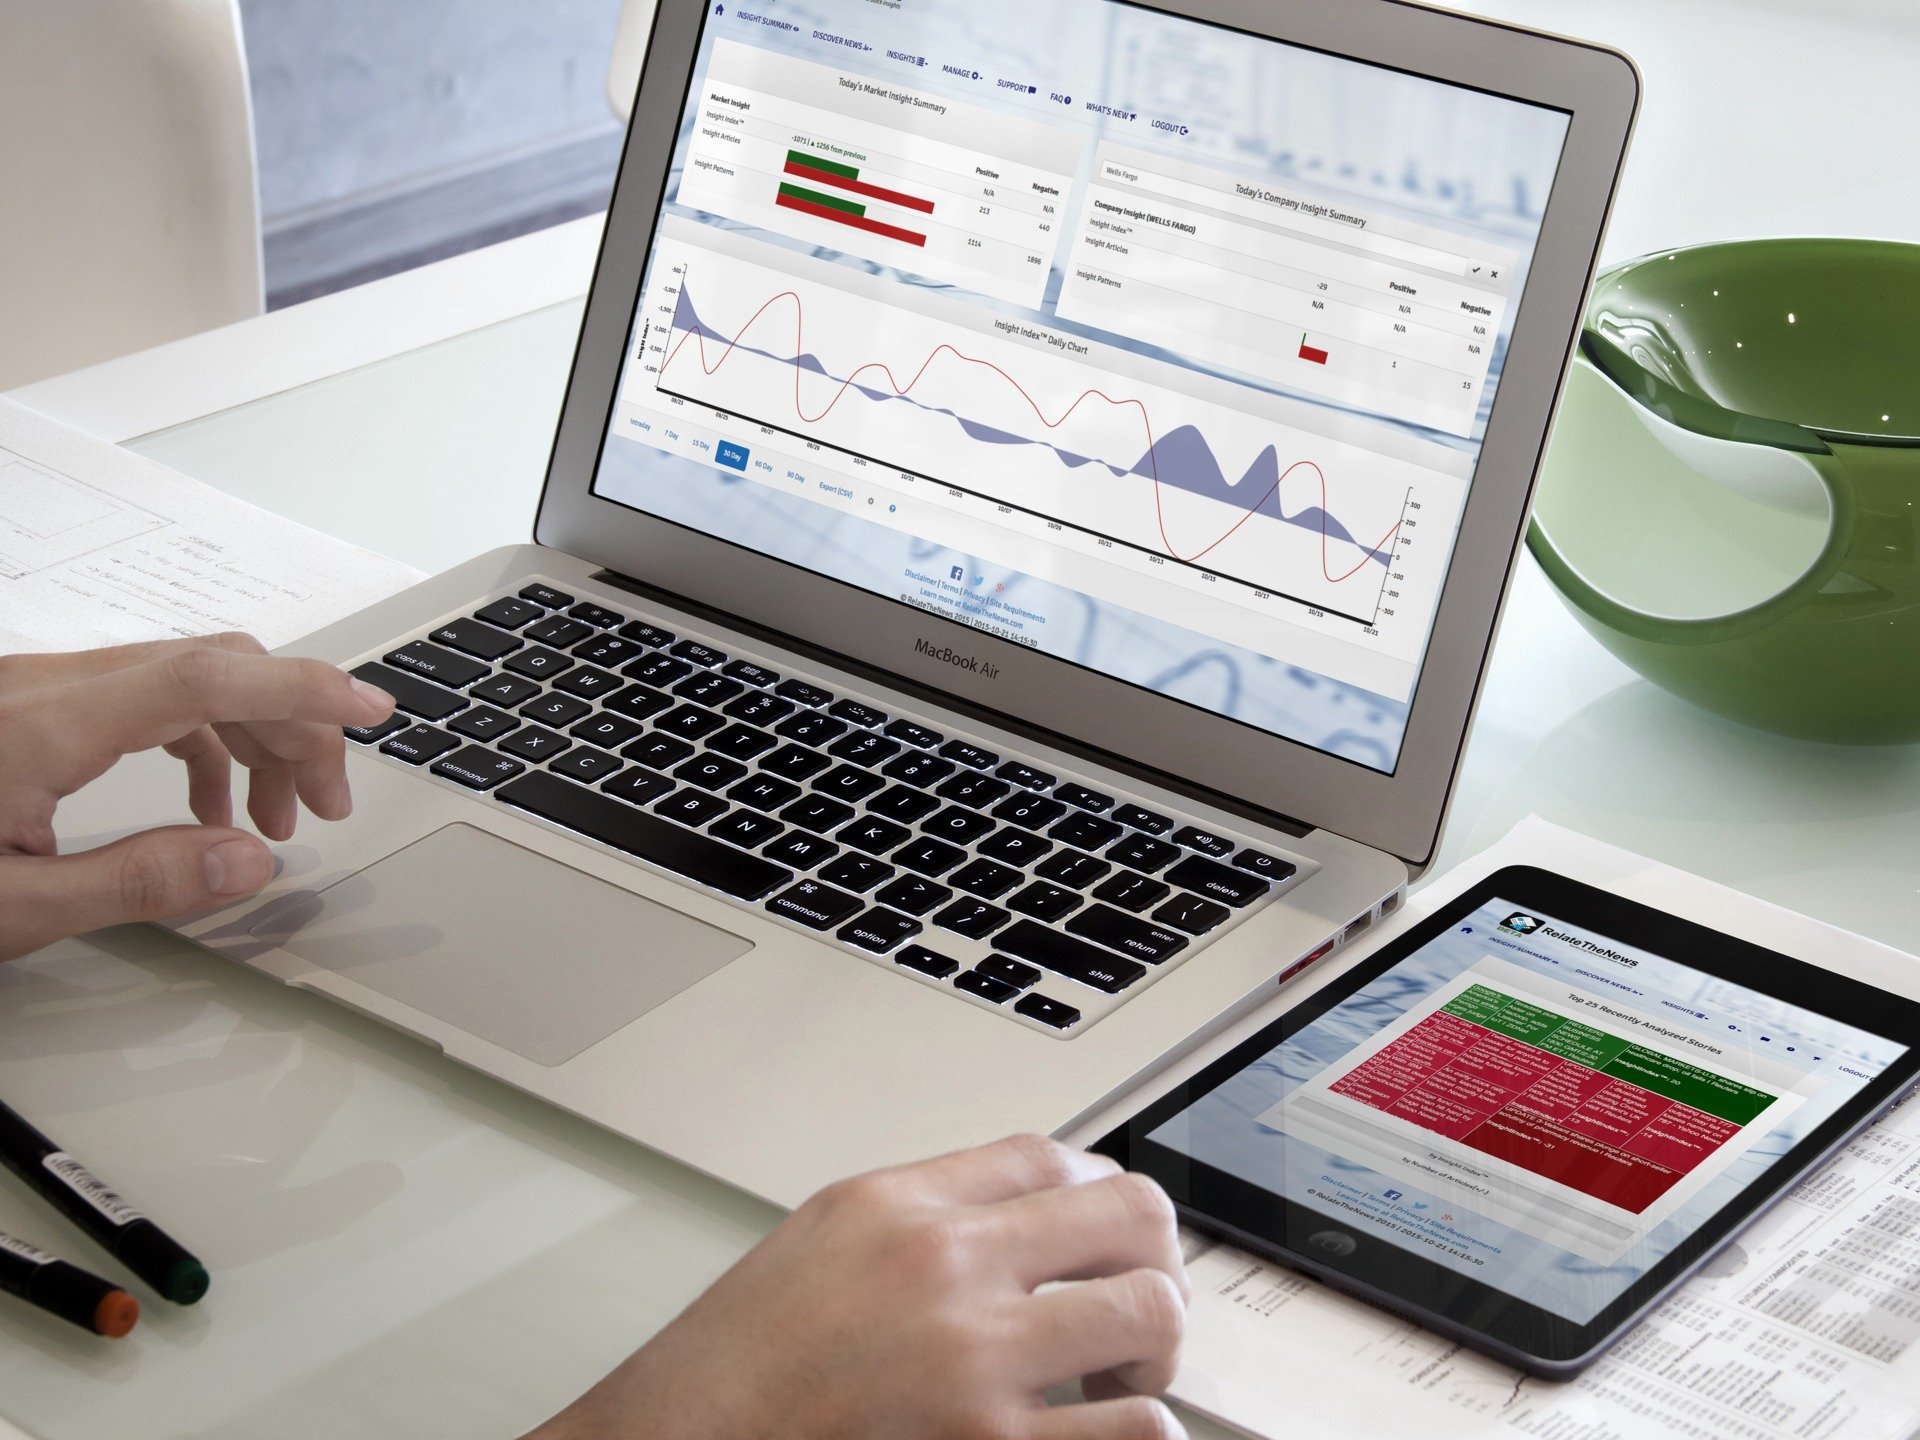 In your office or on the go RelateTheNews provides the market news analysis you need to trade and invest more effectively.